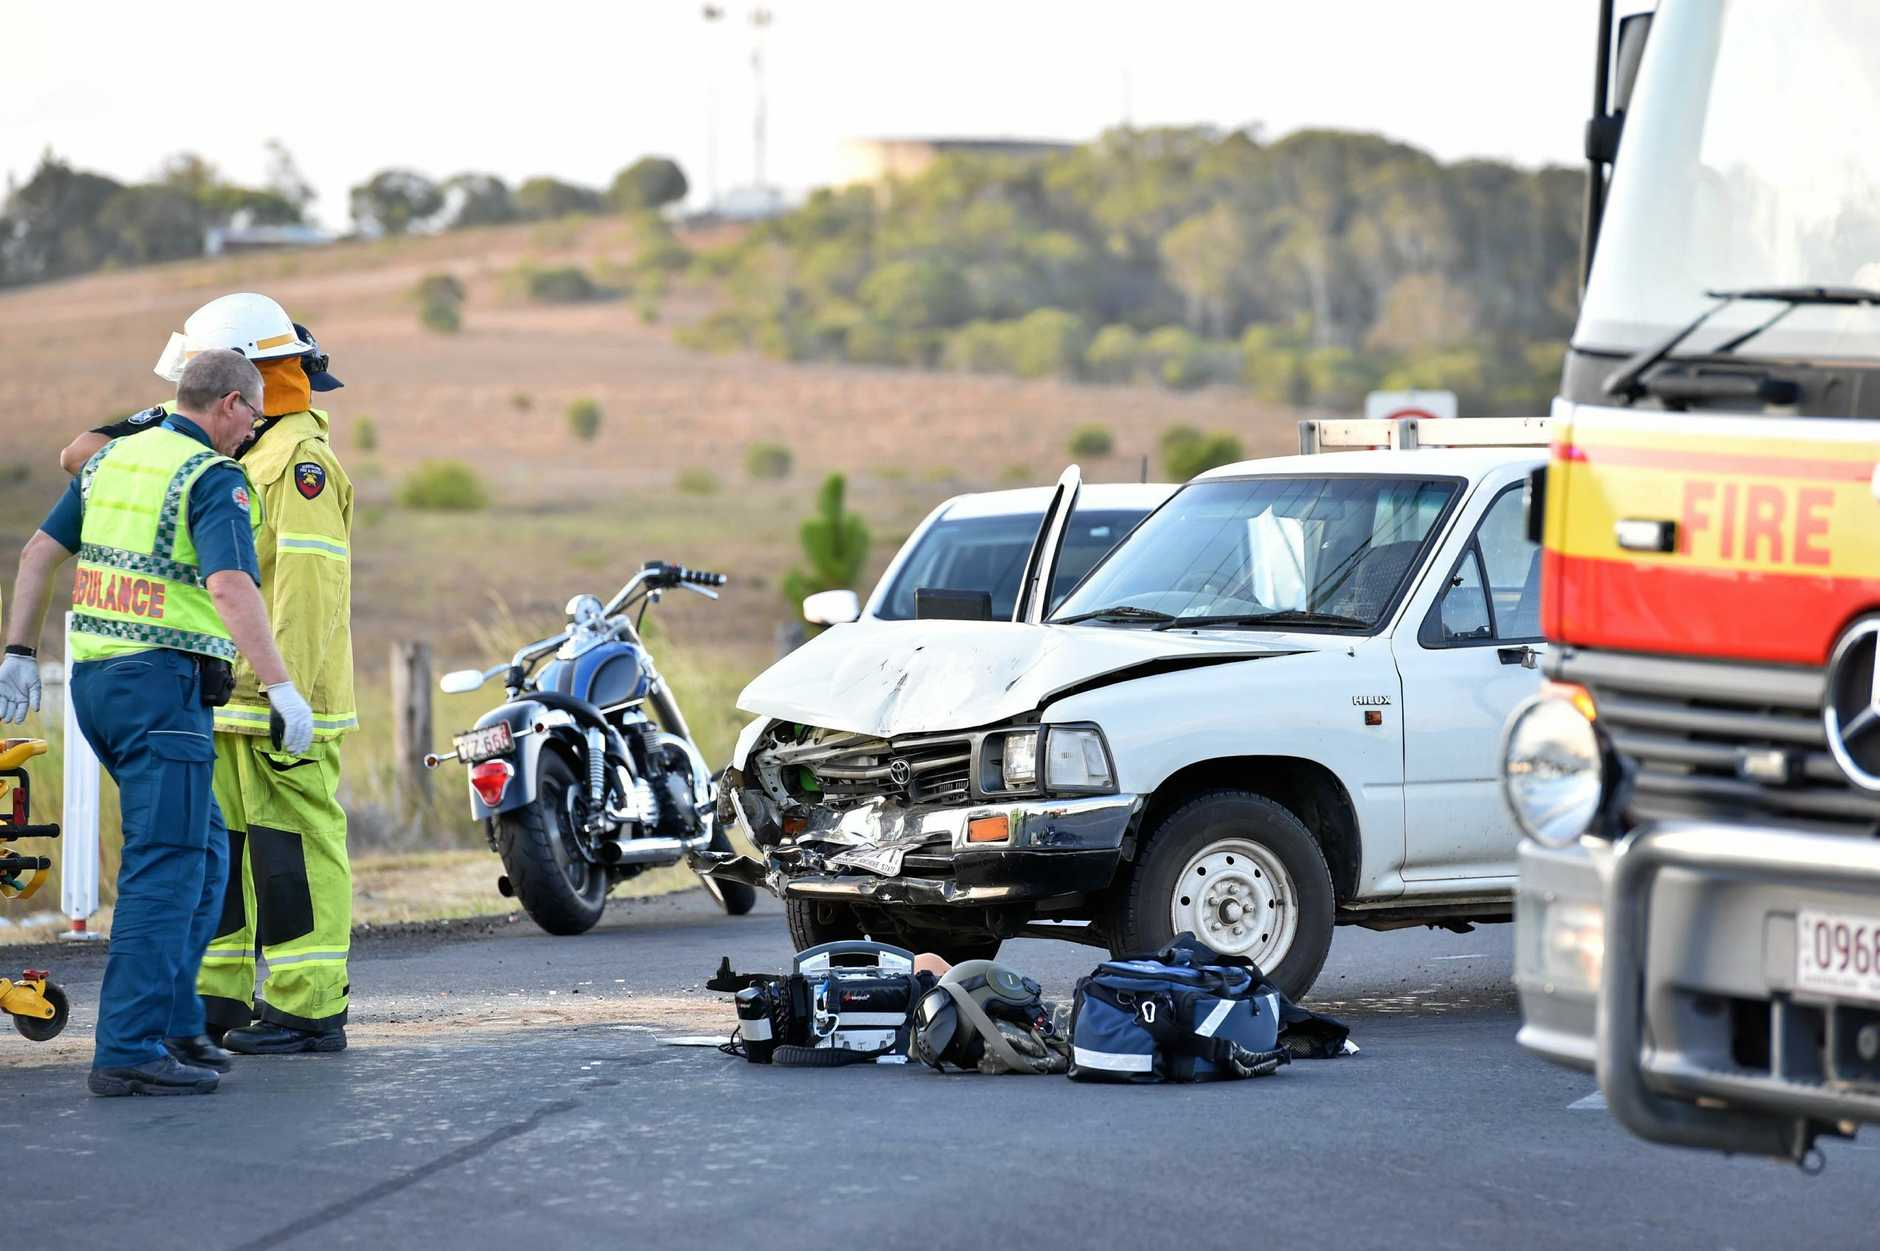 Two vehicle crash between a motorcycle and a utility at the intersection of Chapel Rd and Main St at Nikenbah in September 2017.